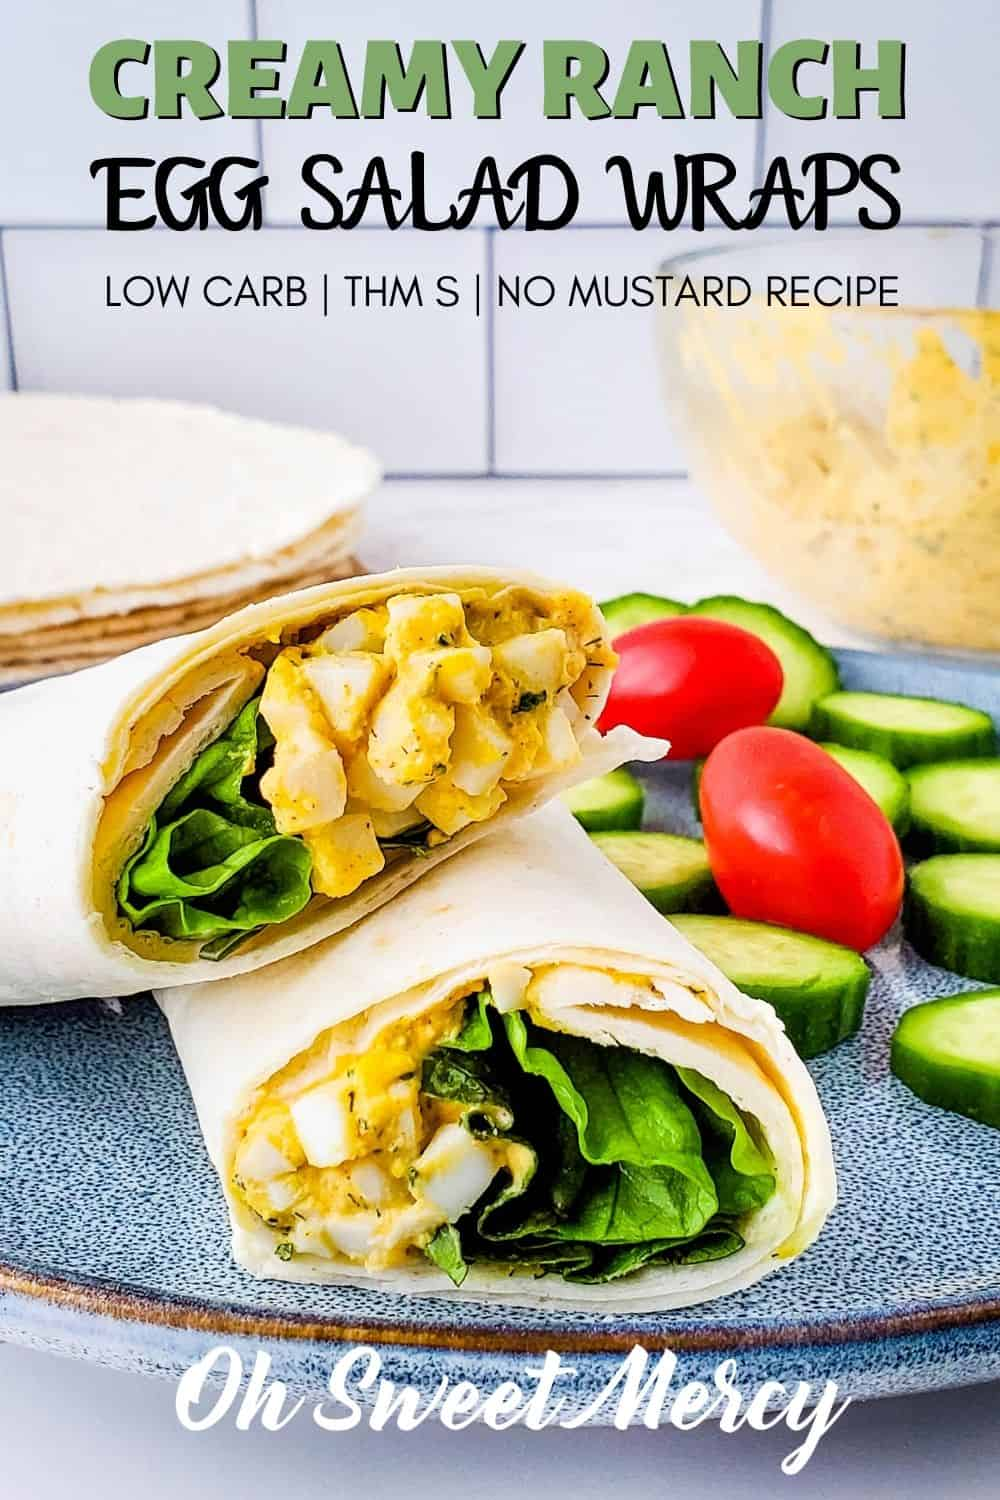 My Creamy Ranch Egg Salad Wraps make a perfect low carb lunch or snack. Super easy to make, this mayo-based egg salad has no mustard, just herbs and spices from your cupboard! THM S and keto friendly. #thm #eggsalad #wraps #lowcarb #eggrecipes @ohsweetmercy